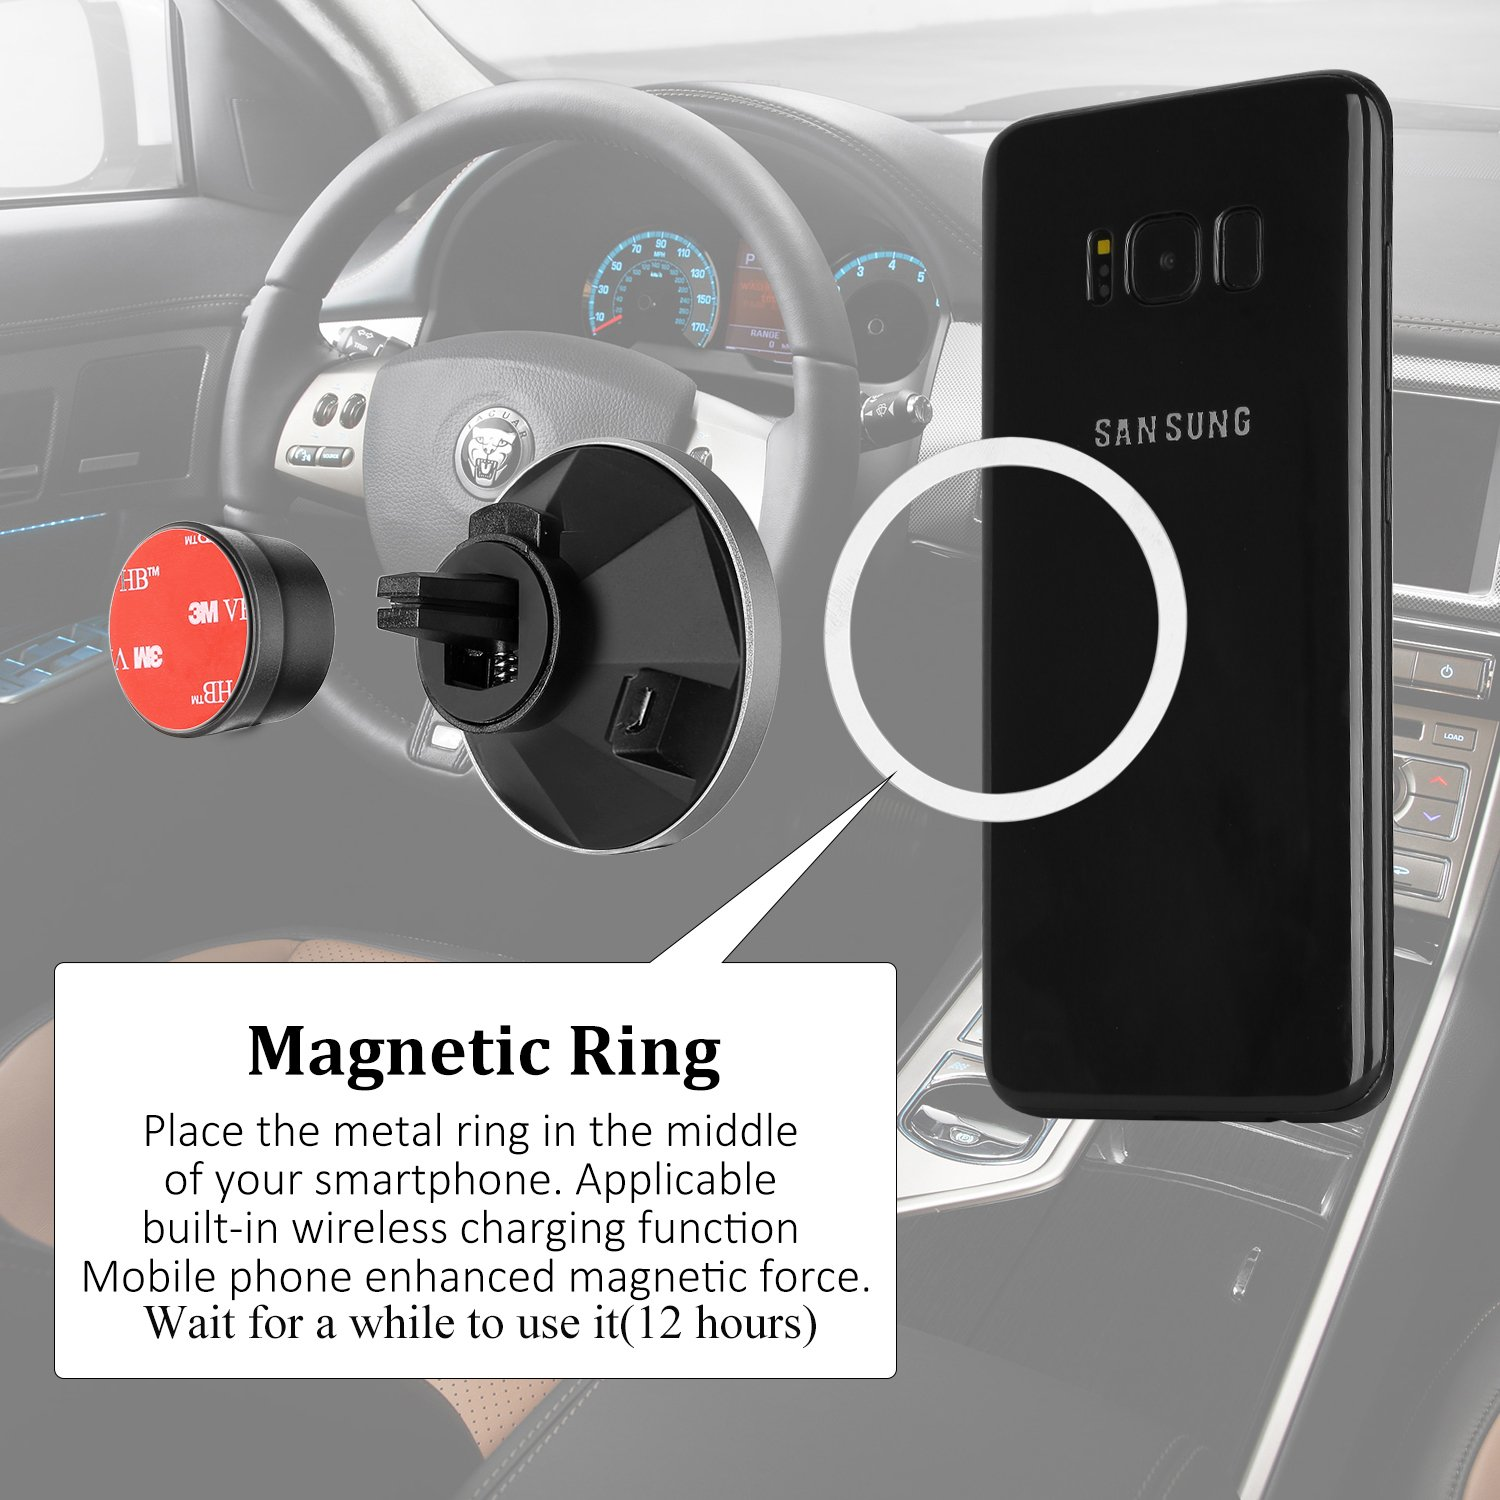 Qinoren Magnetic Wireless Car Charger Air Vent Phone Holder,Wireless Charging for Samsung S9/S9+/S8/S8+/S7/S7 Edge Note 8、Apple iPhone X/8/8 Plus and All QI-Enabled Devices(No Car Charger) by Qinoren (Image #3)